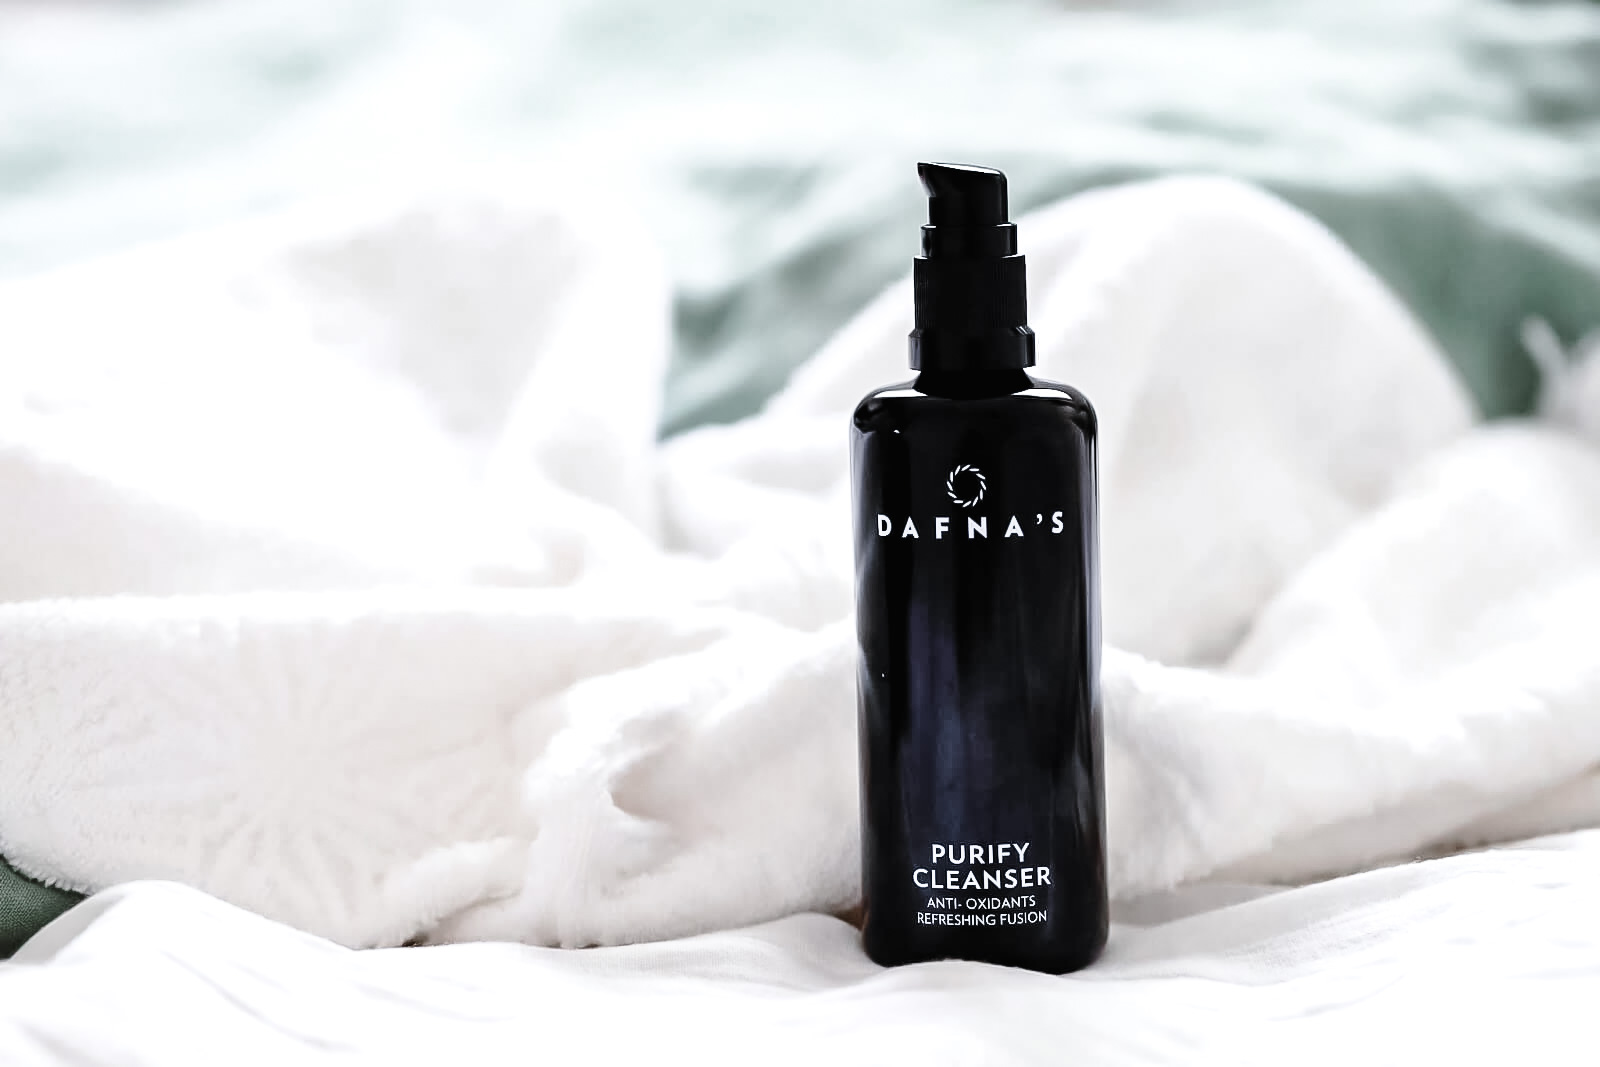 Dafna's Purify Cleanser Nettoyant test